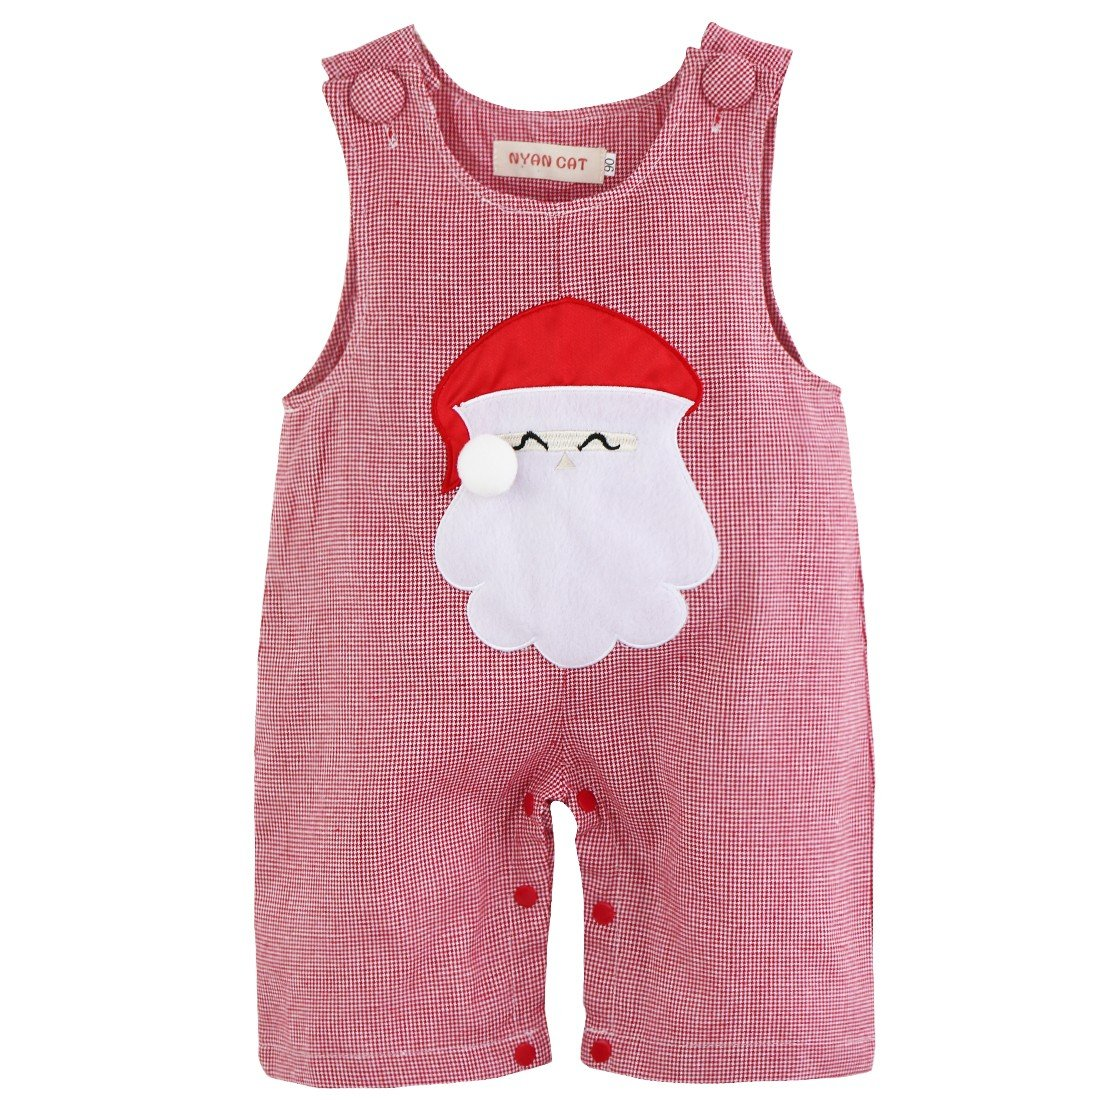 YiZYiF 1'ST Christmas Santa Claus Costume Baby Boys' Girls' Plaid Romper Bodysuit